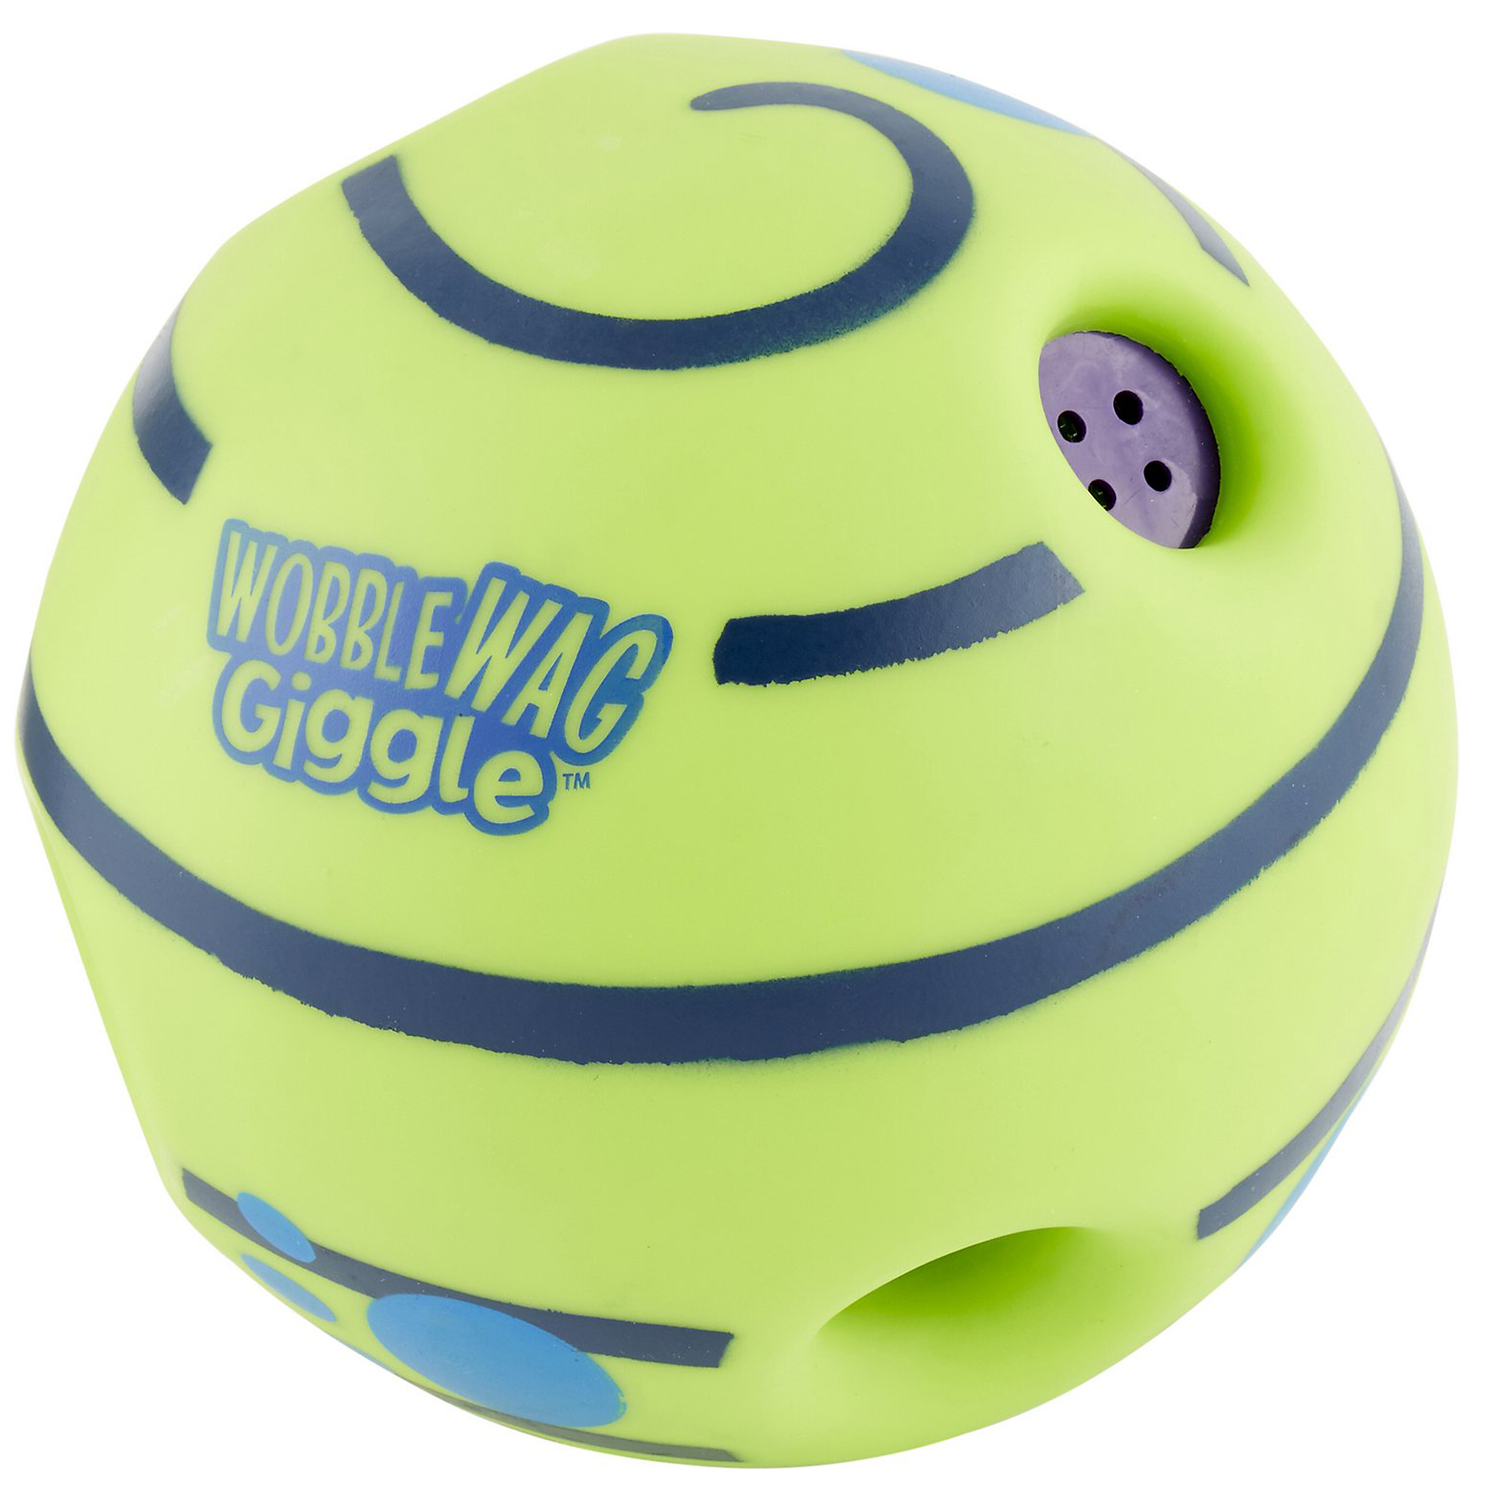 Wobble Wag Giggle Ball Squeaky Dog Toy